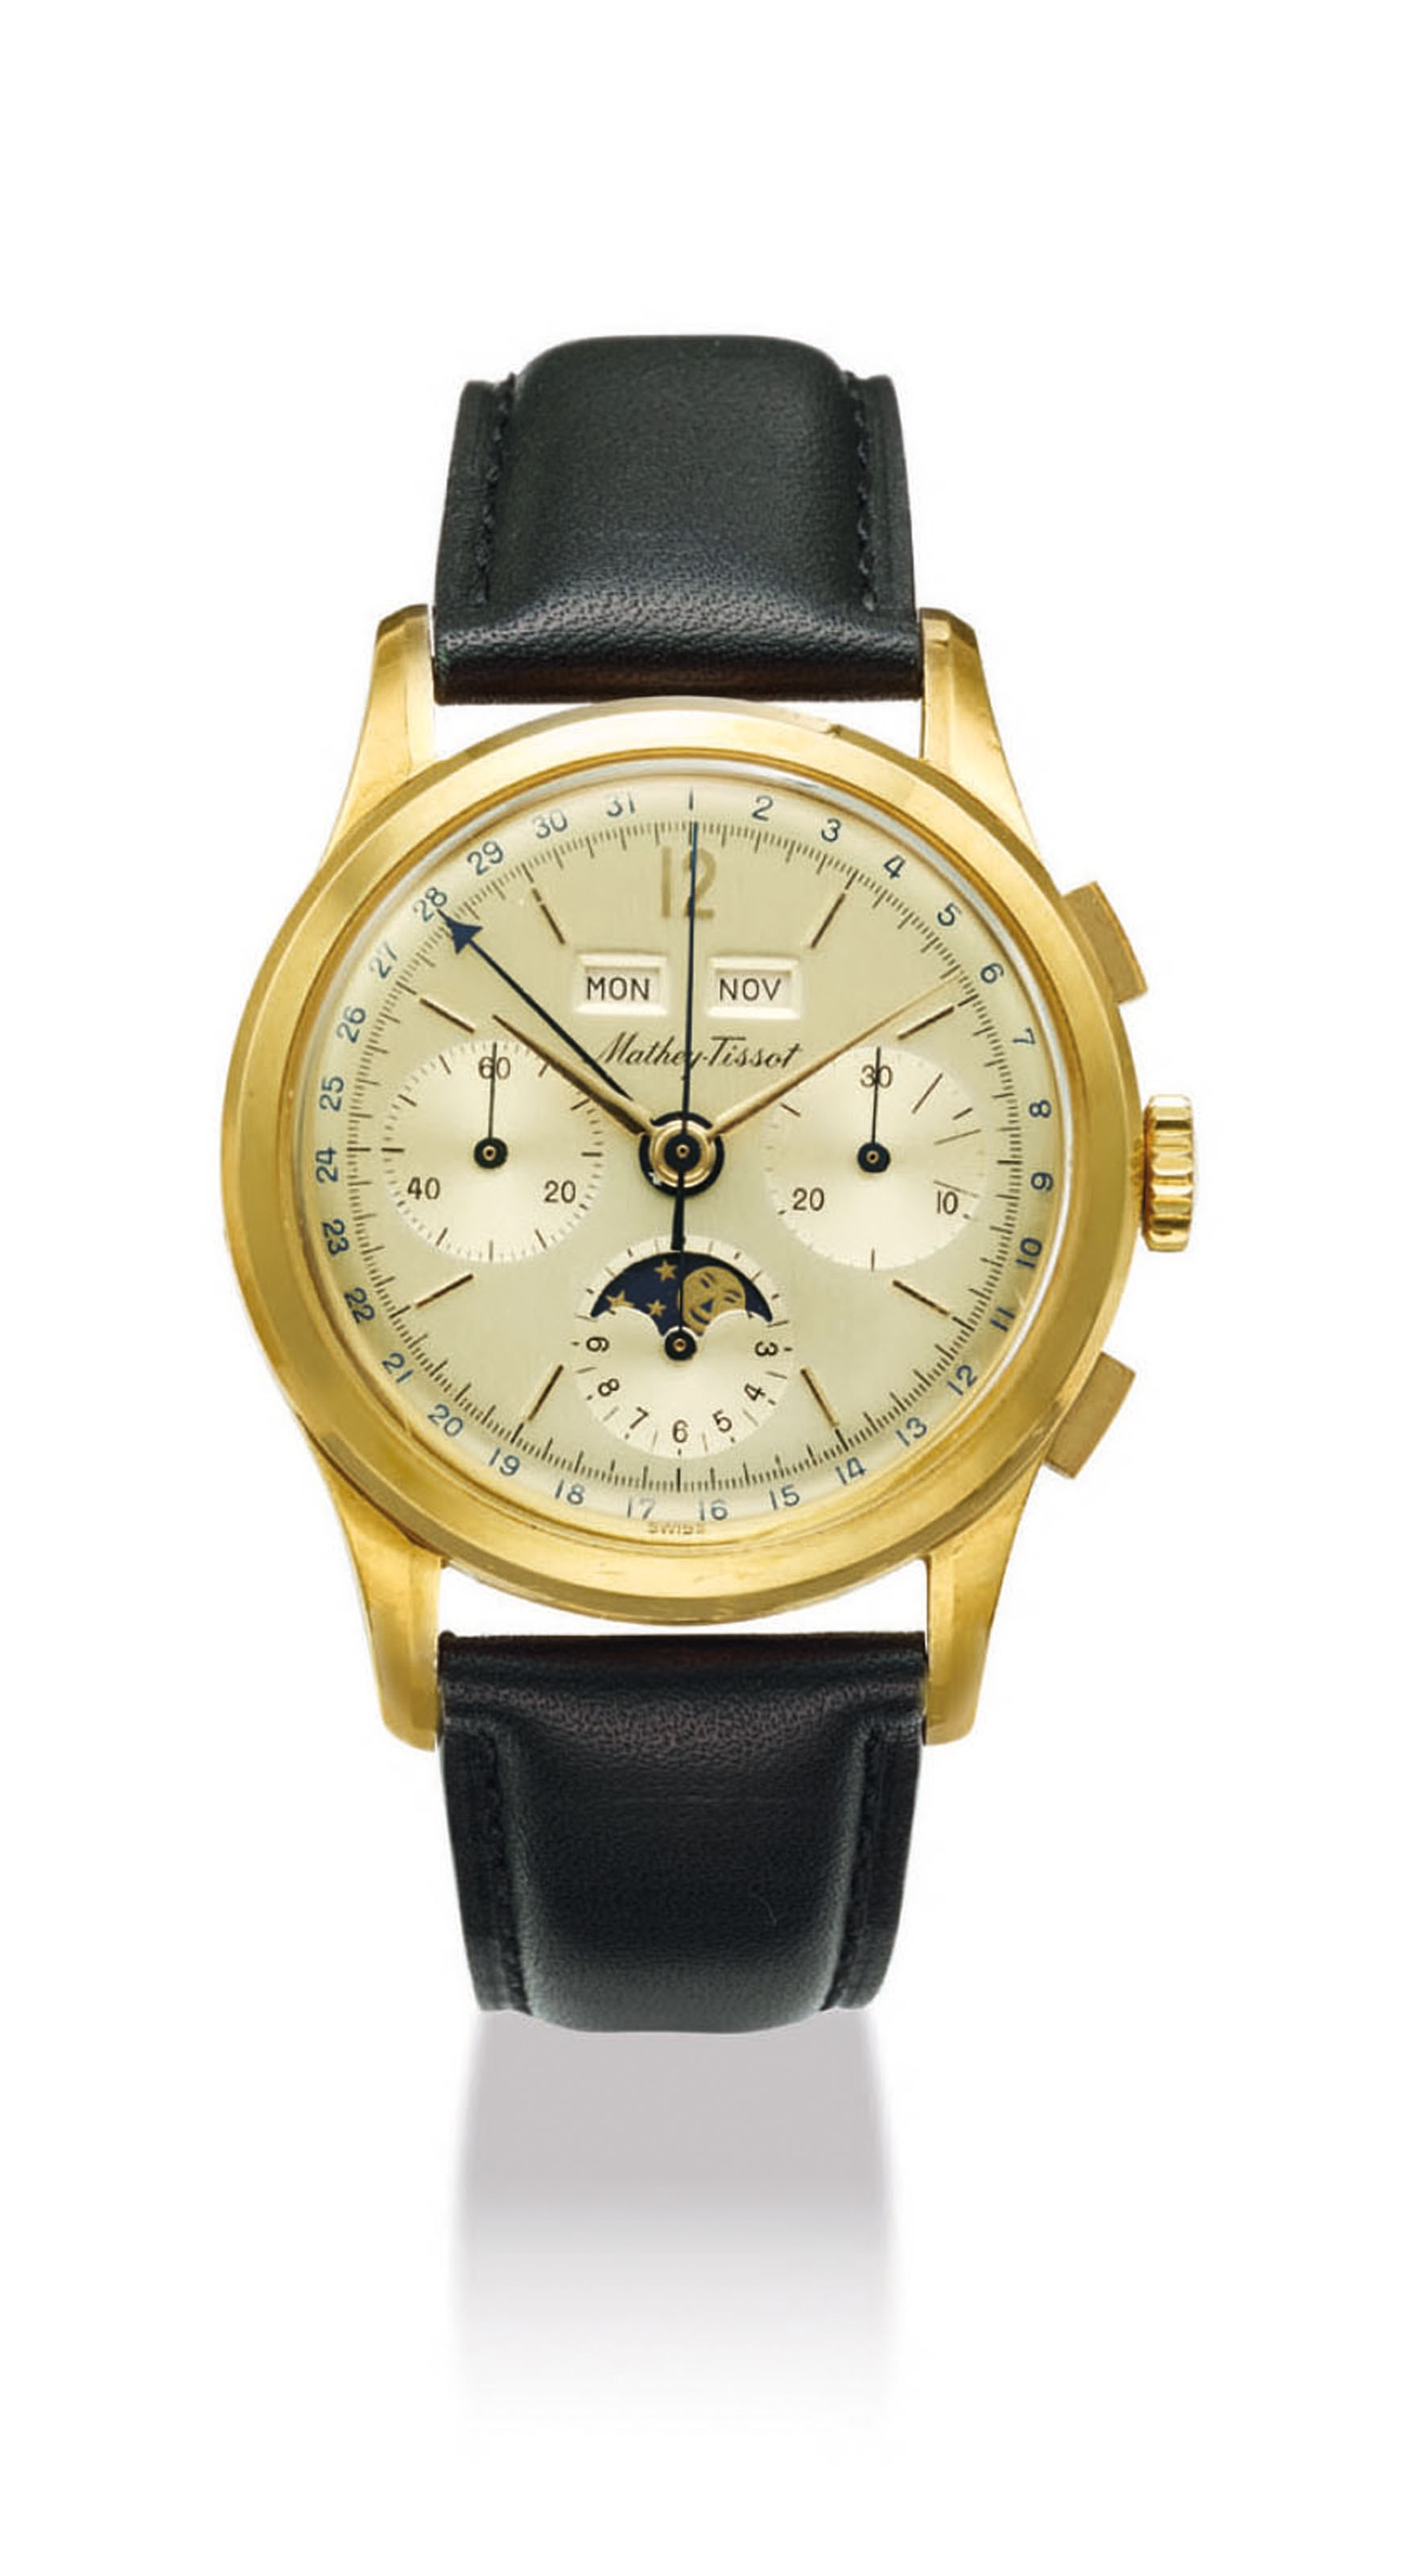 MATHEY-TISSOT. AN 18K GOLD TRIPLE CALENDAR CHRONOGRAPH WRISTWATCH WITH MOONPHASES